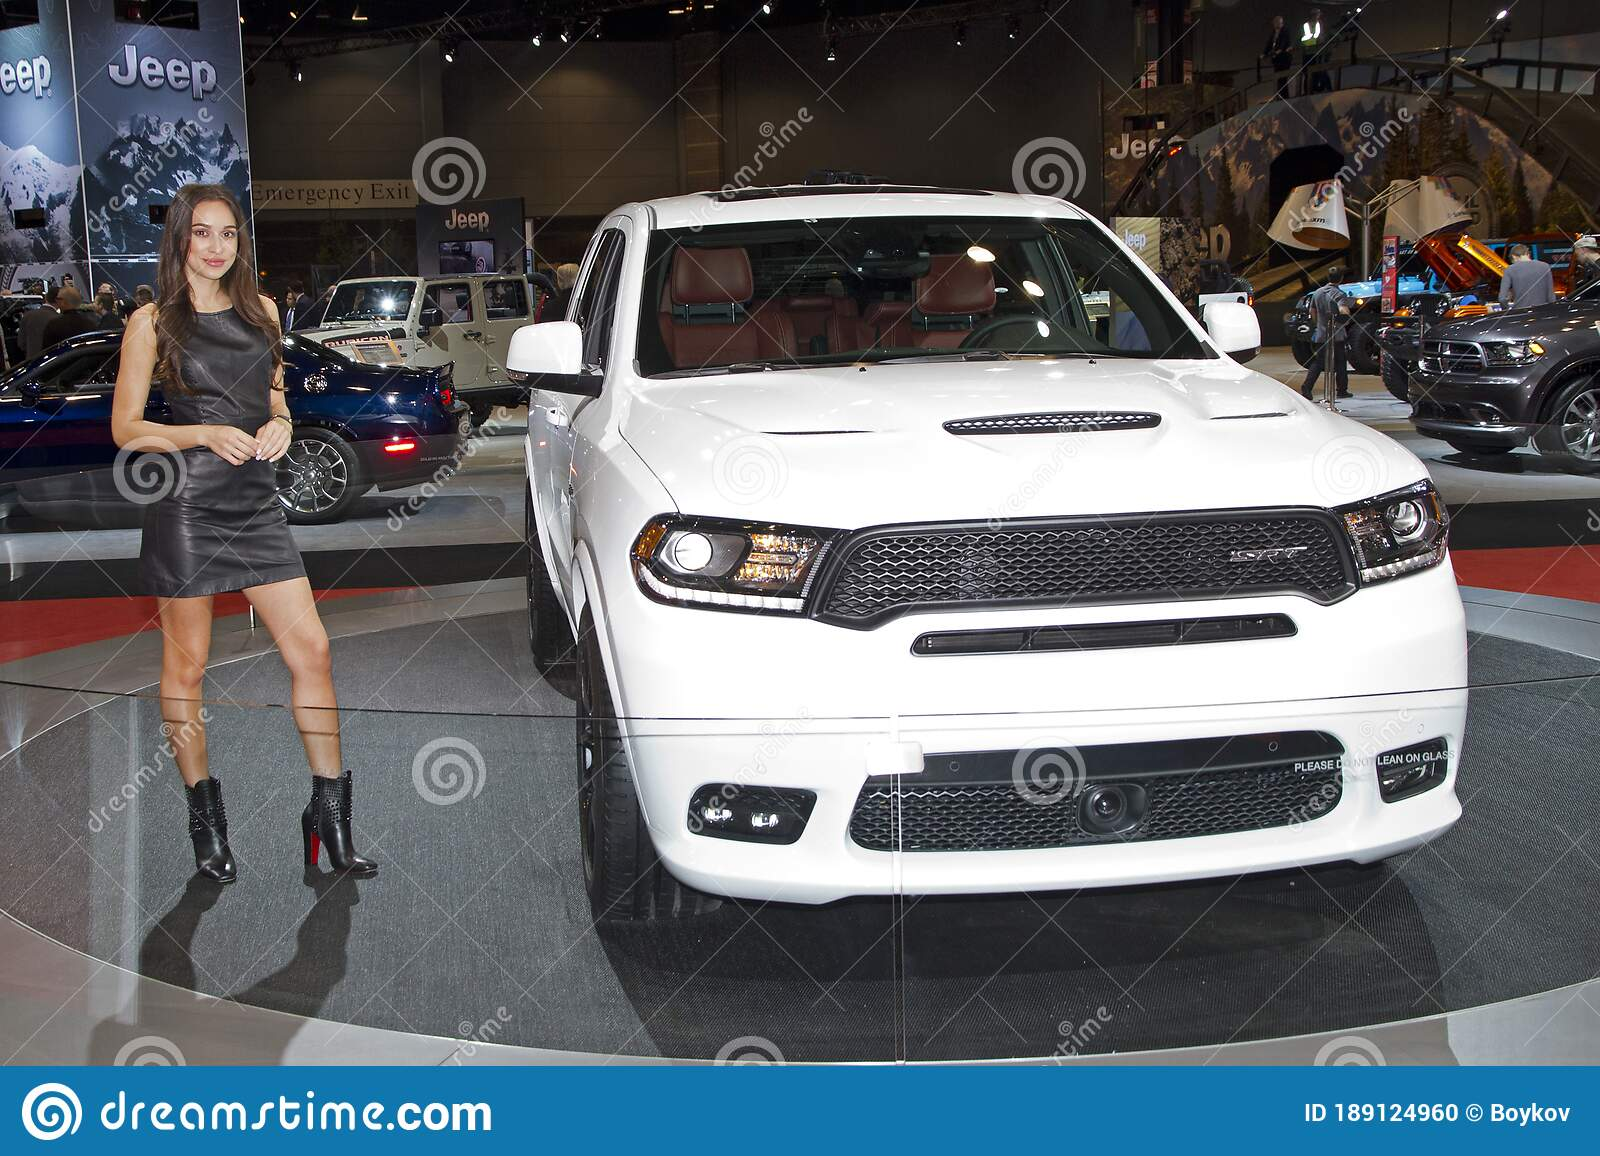 Dodge Durango Srt At The Annual International Auto Show February 11 2017 In Chicago Il Editorial Image Image Of Design Autoshow 189124960